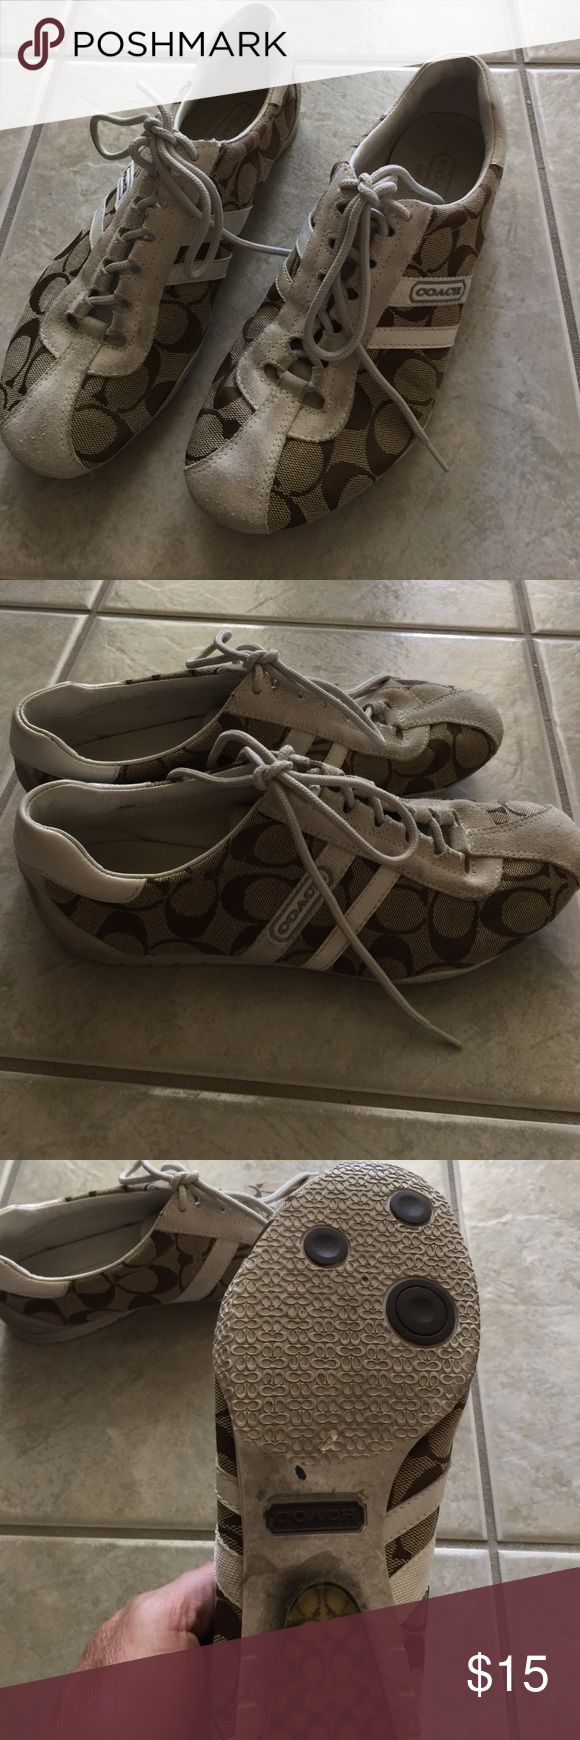 Coach tennis shoes Coach tennis shoes. The suede has staining. Only worn 3 times. Needs to be cleaned. Coach Shoes Sneakers